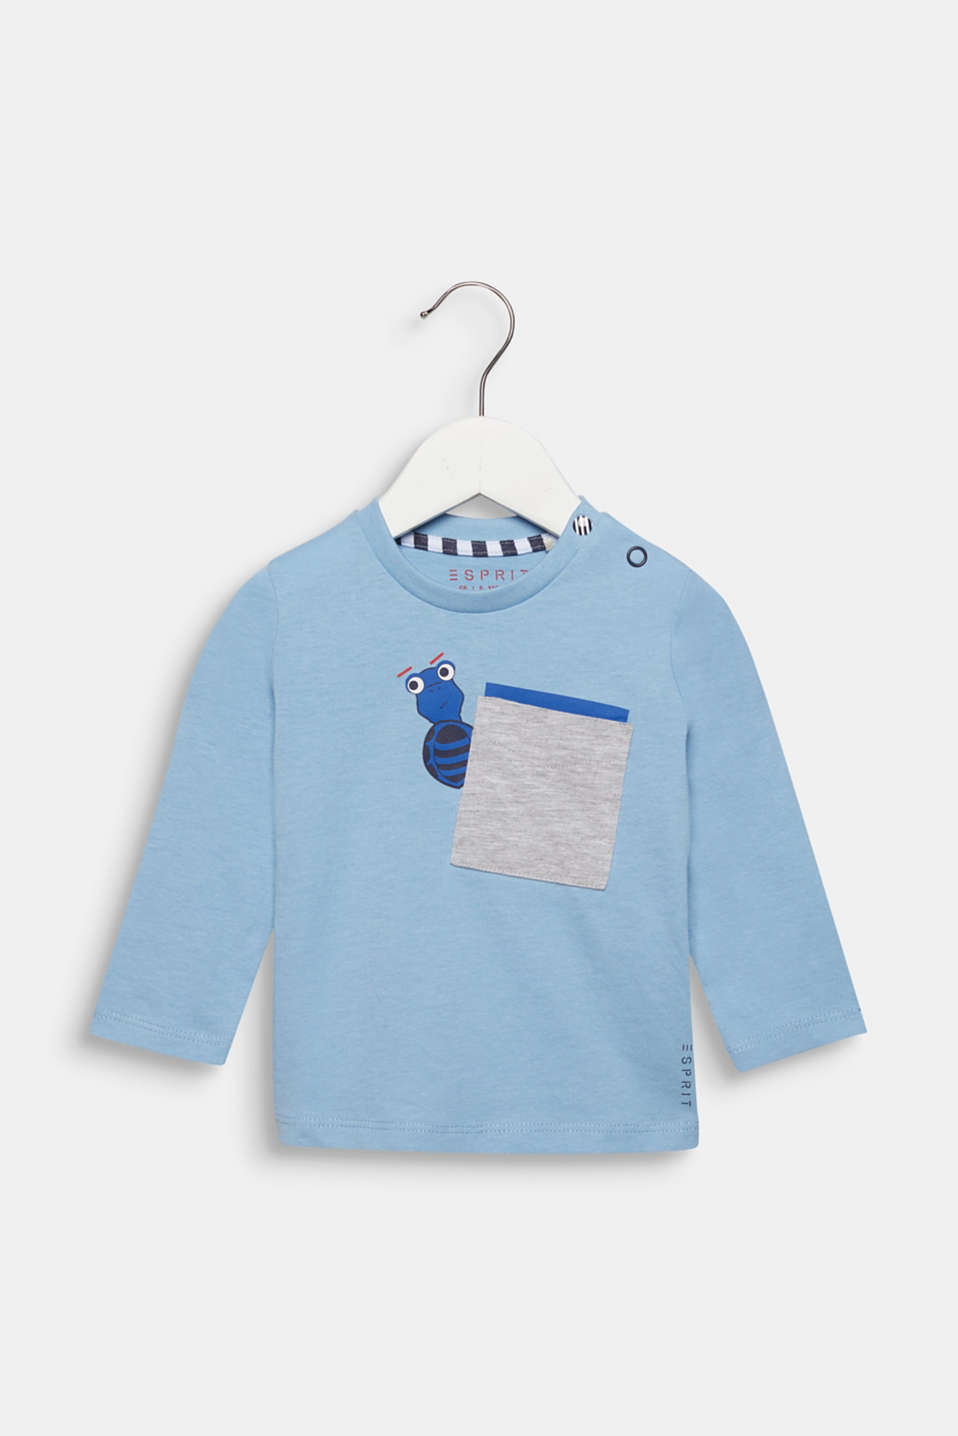 Long sleeve top with a breast pocket and print, cotton, LCLIGHT BLUE, detail image number 0